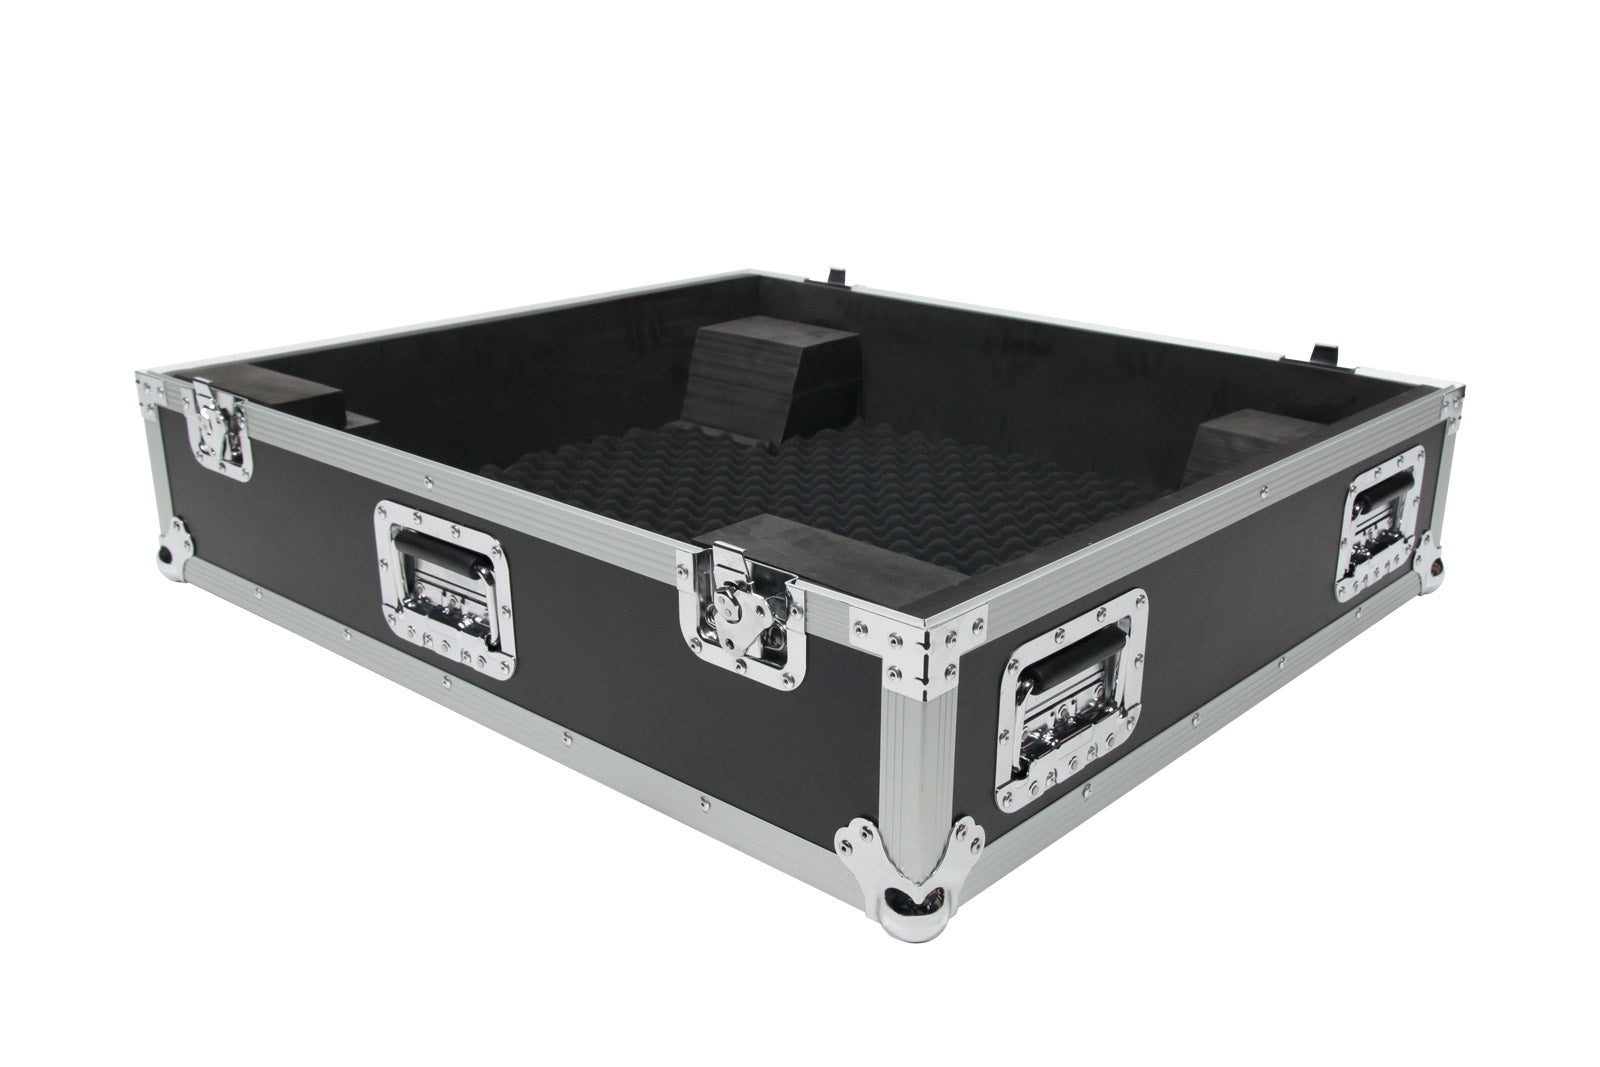 OSP PRE-3242-ATA Case for PreSonus Studio Live 32.4.2 Digital Mixer